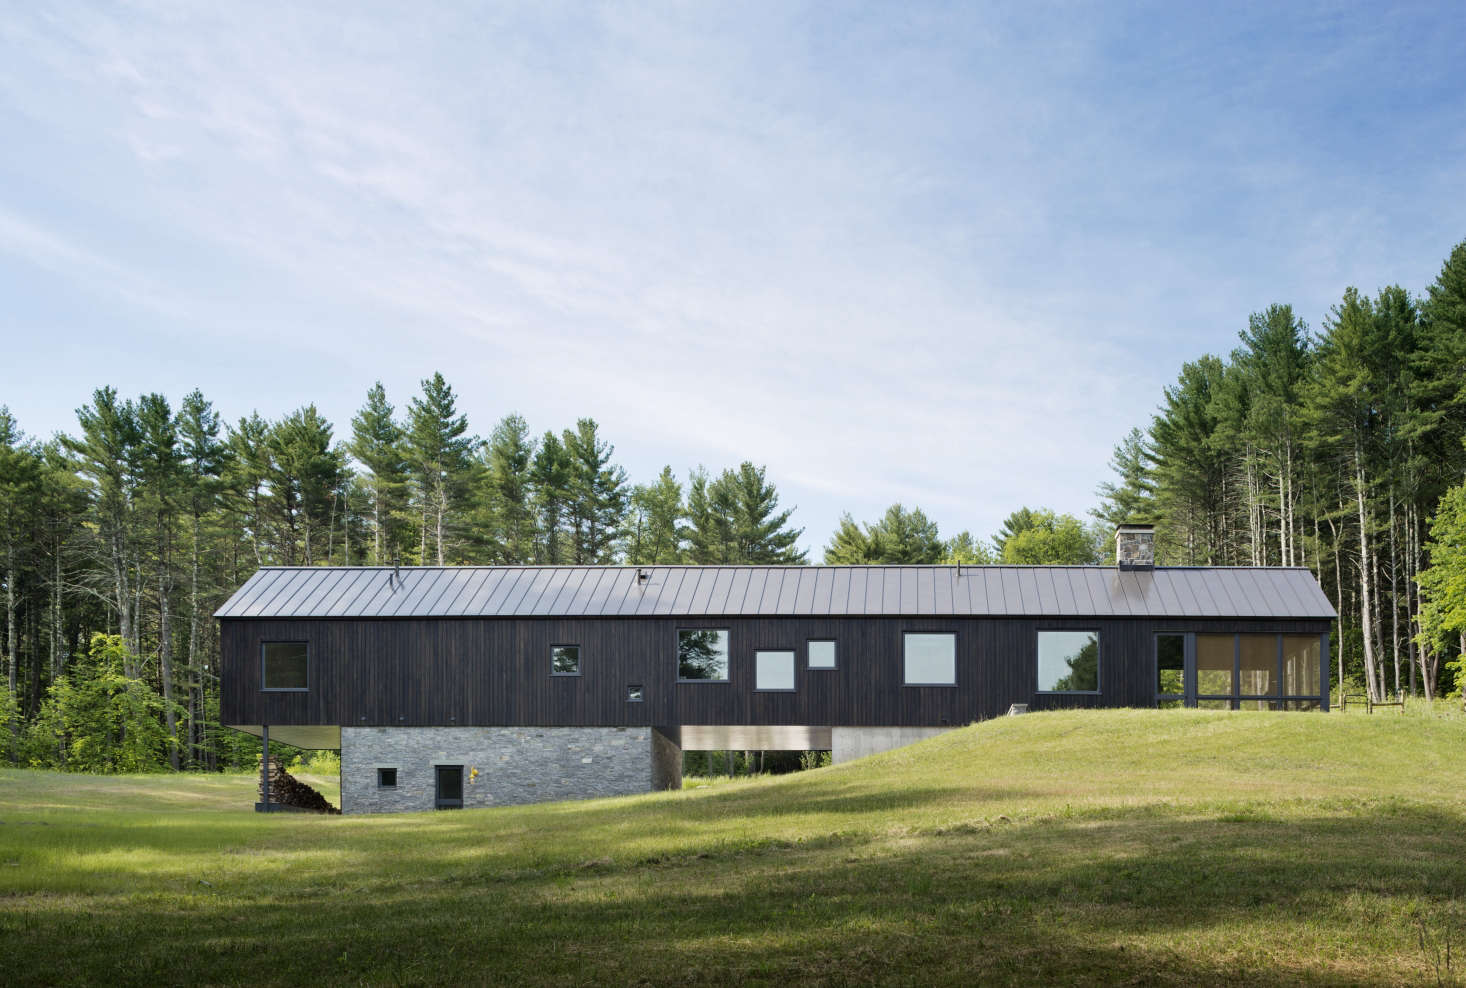 Undermountain a low-impact barn-style house in the Berkshires by O'Neill Rose Architects